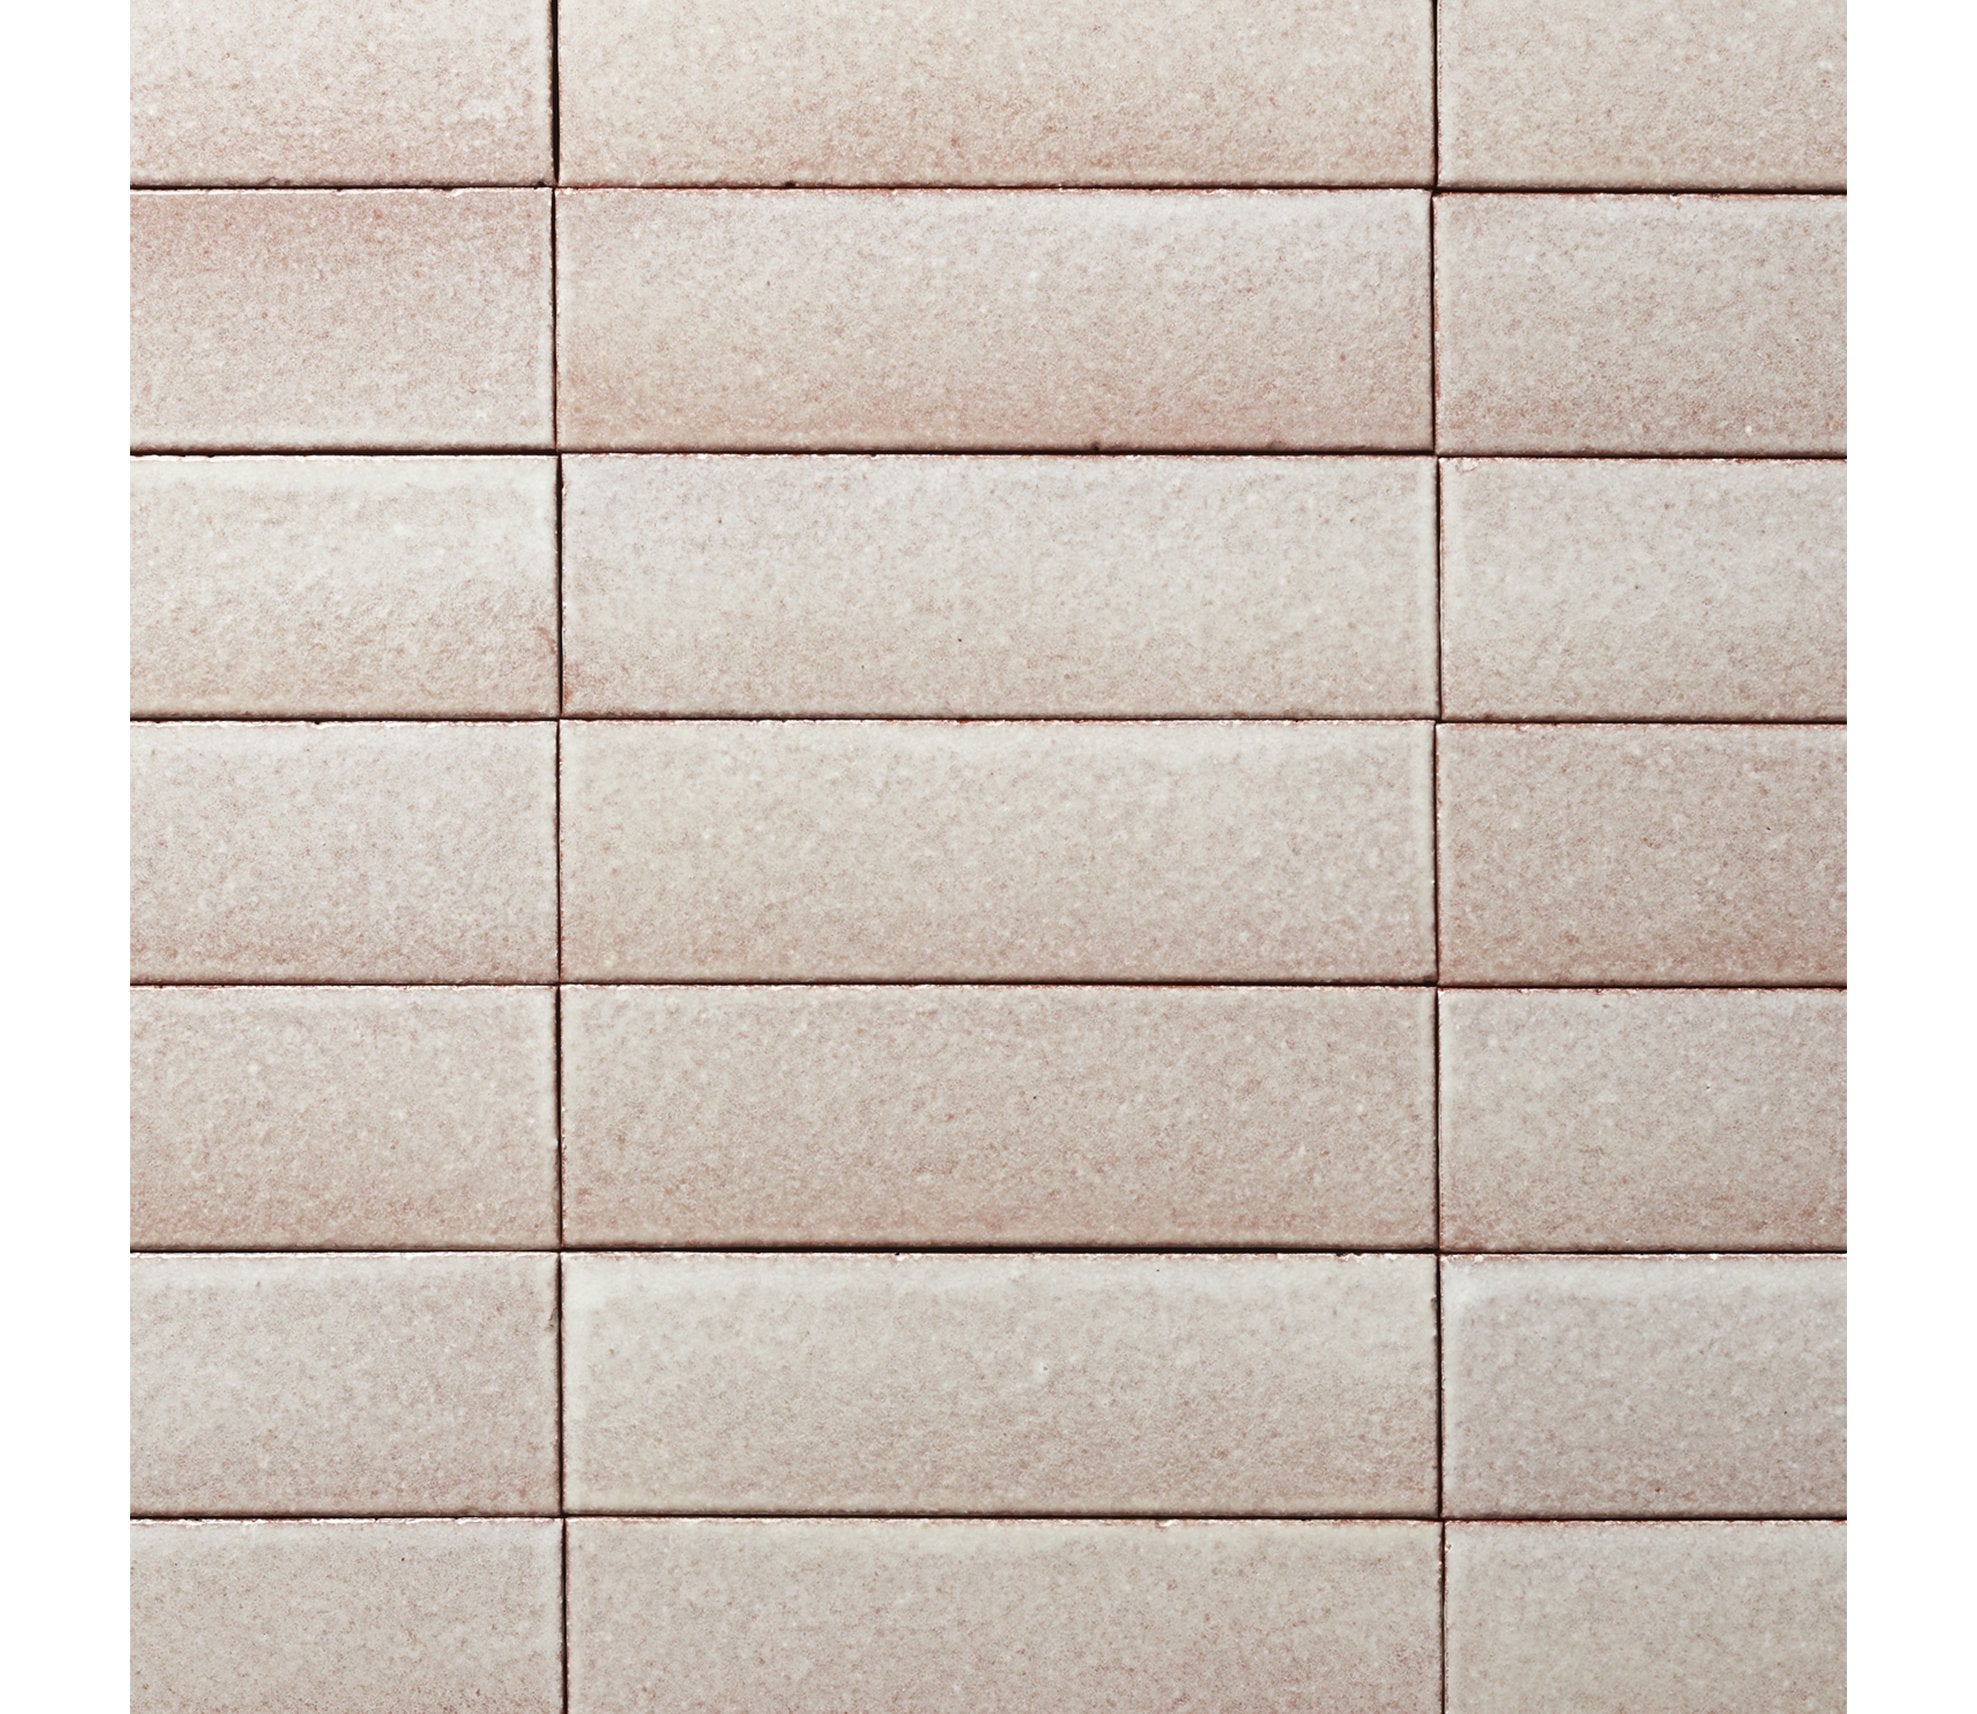 Terra Firma Glazed Bricks Product Image 37